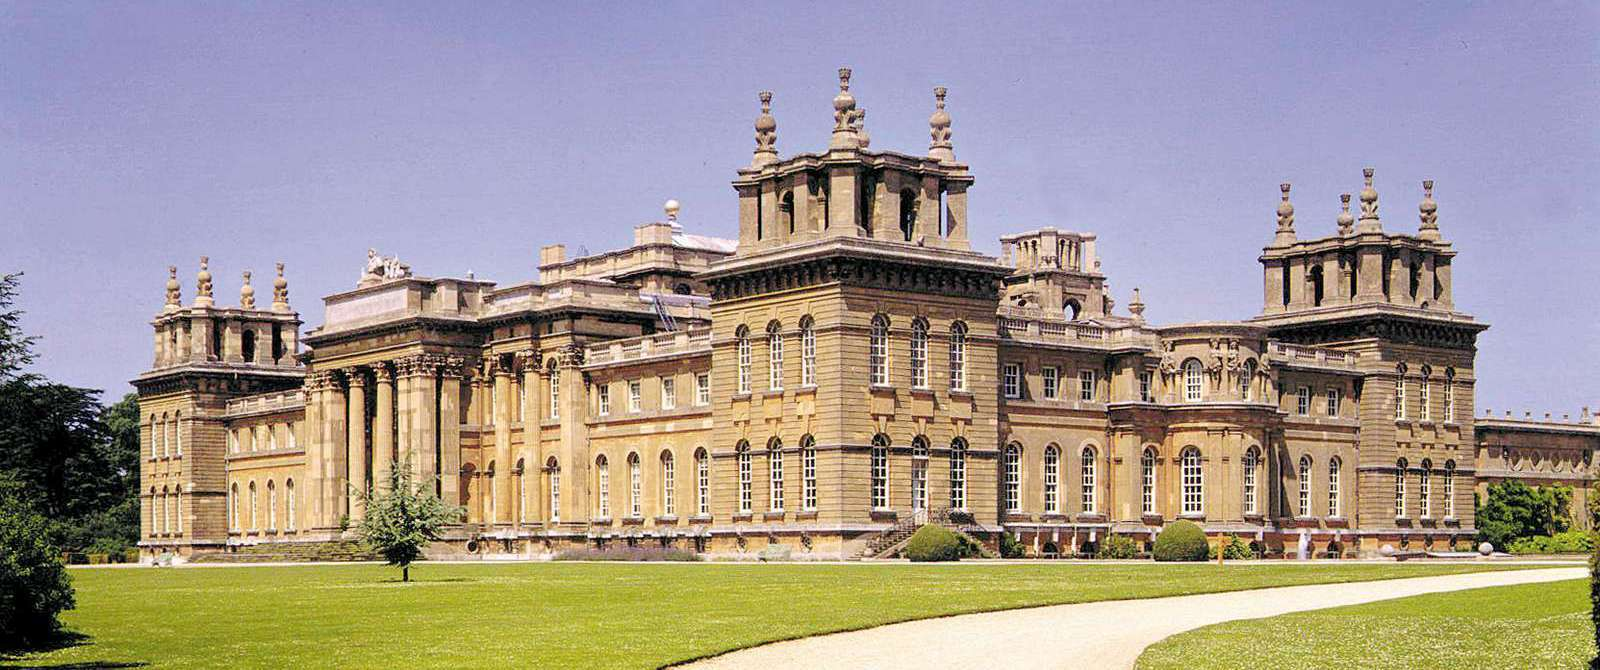 Blenheim Palace near Cartwight Hotel in Anyo Banbury Oxfordshire